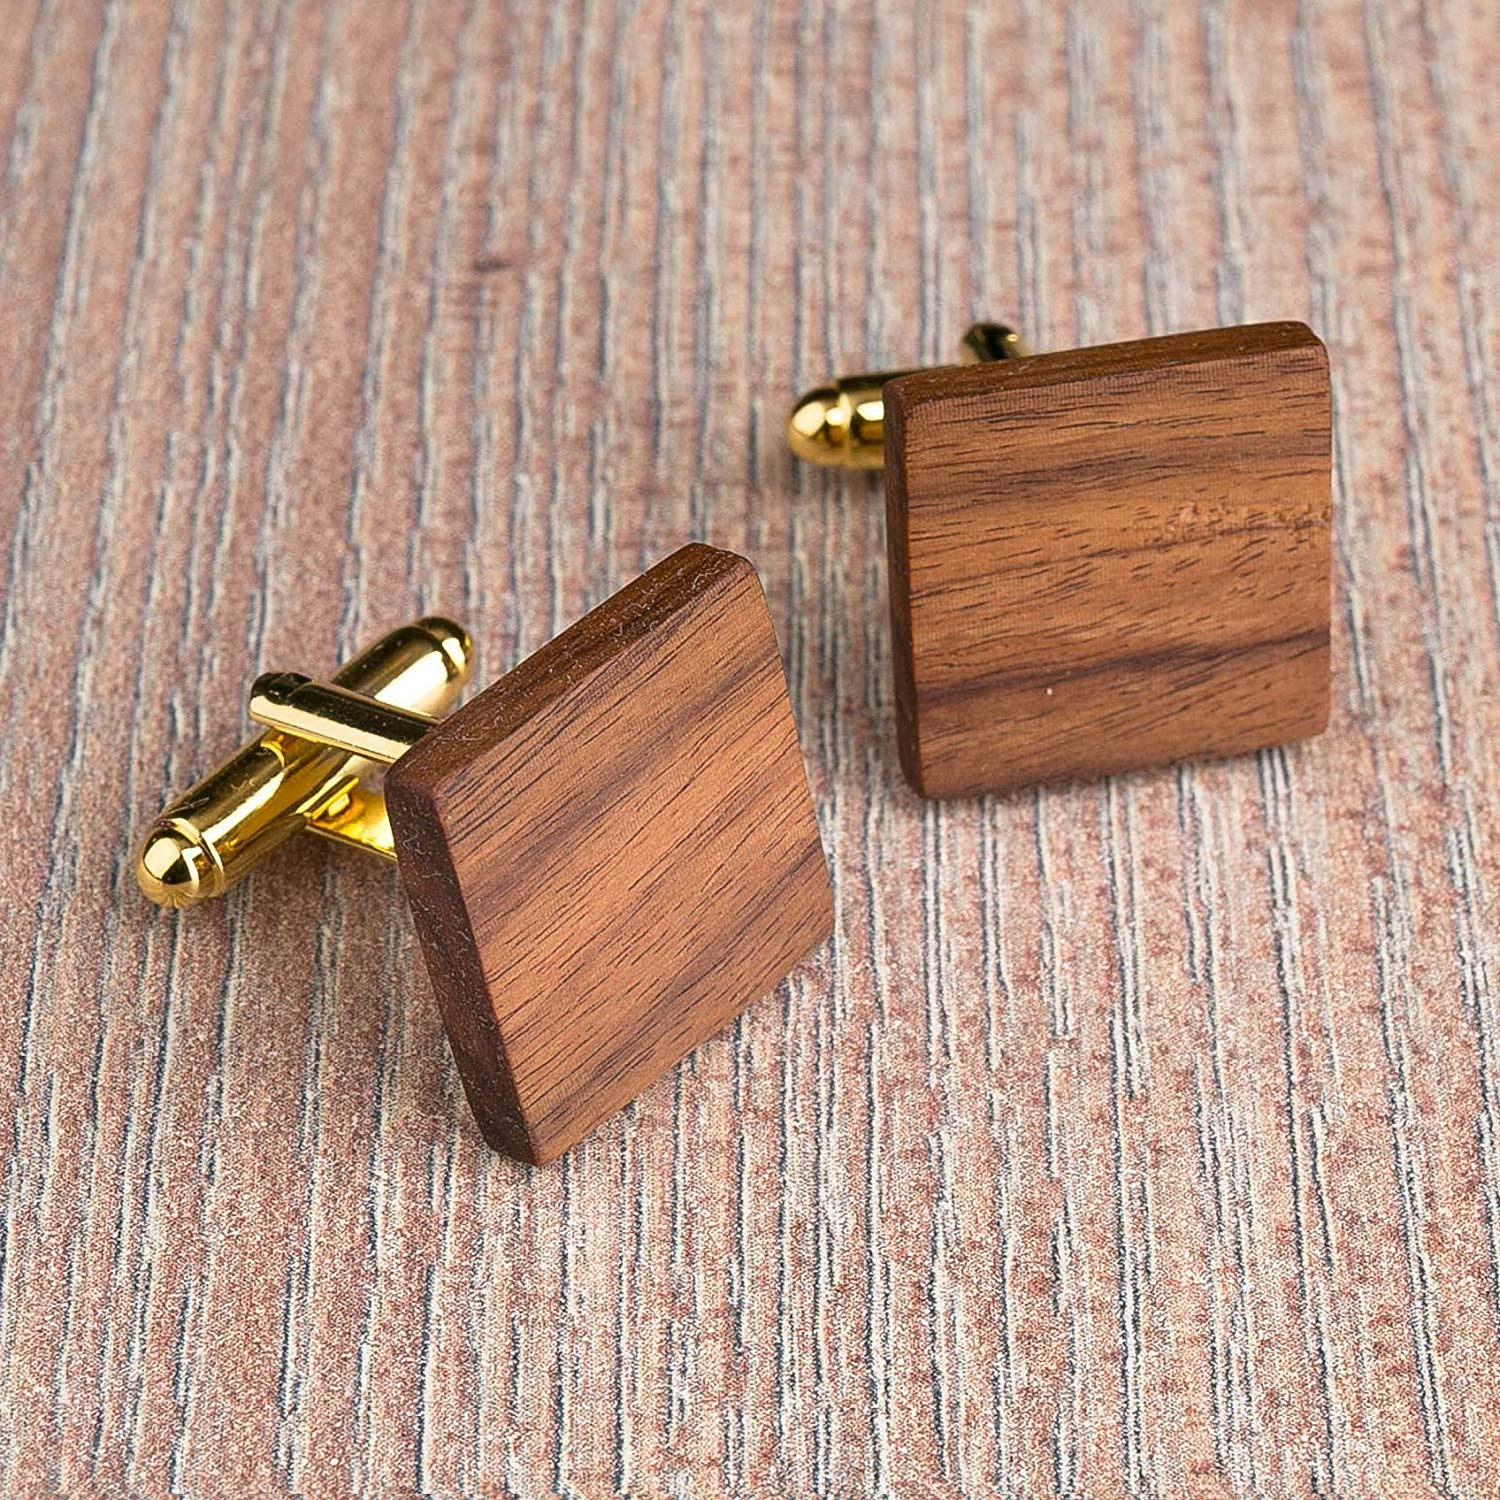 Rosewood Wood cufflinks. Brown Square cufflinks. Custom personalized initial monogram cufflinks. Natural wood engraved jewelry for men. Boss present. 3 base color. Wedding groomsmen groom gifts